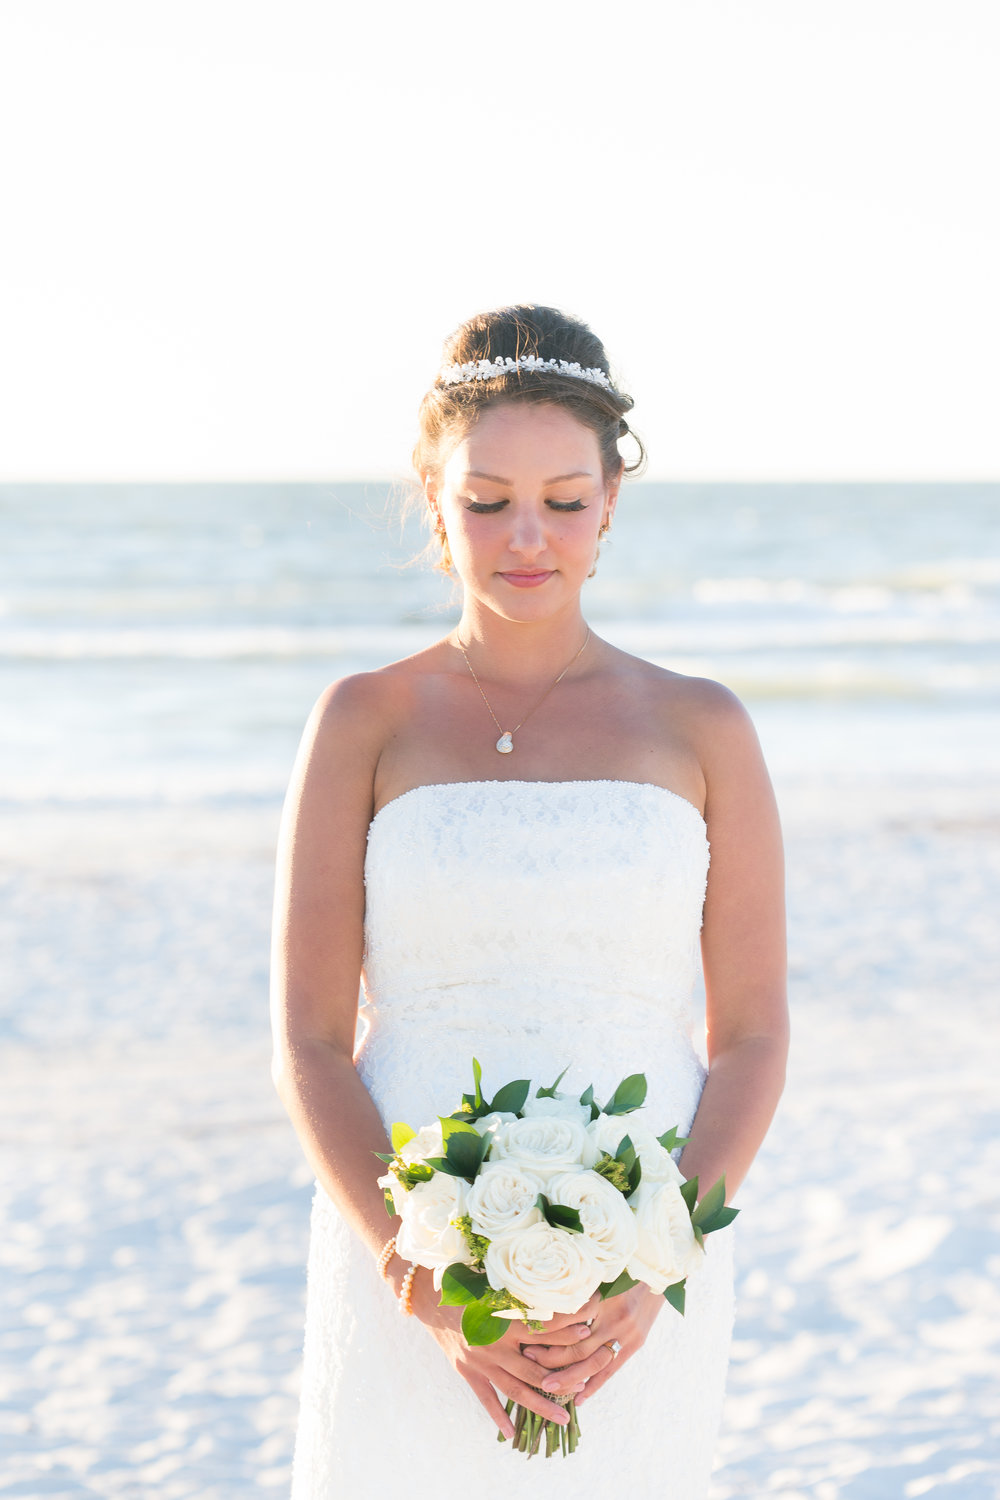 bride, St.Pete wedding photographer, St.Pete wedding, St.Pete beach, tide the knot beach weddings, mir salgado photography, Tampa wedding photographer